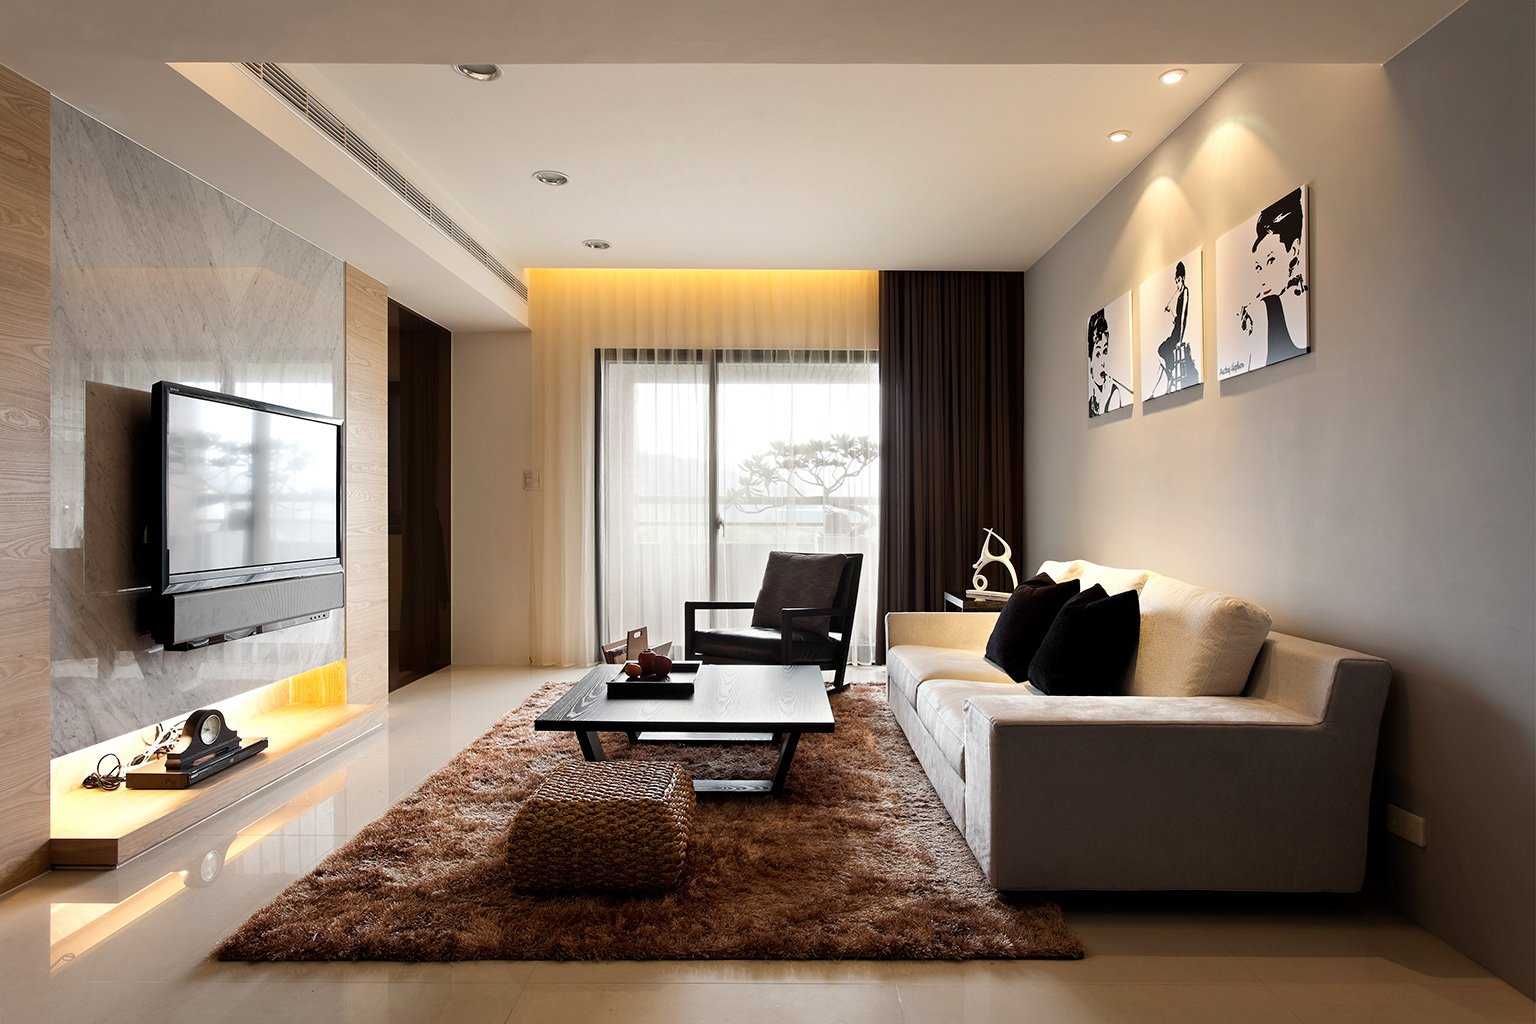 Contemporary Home Decor Modern Minimalist Decor With A Homey Flow